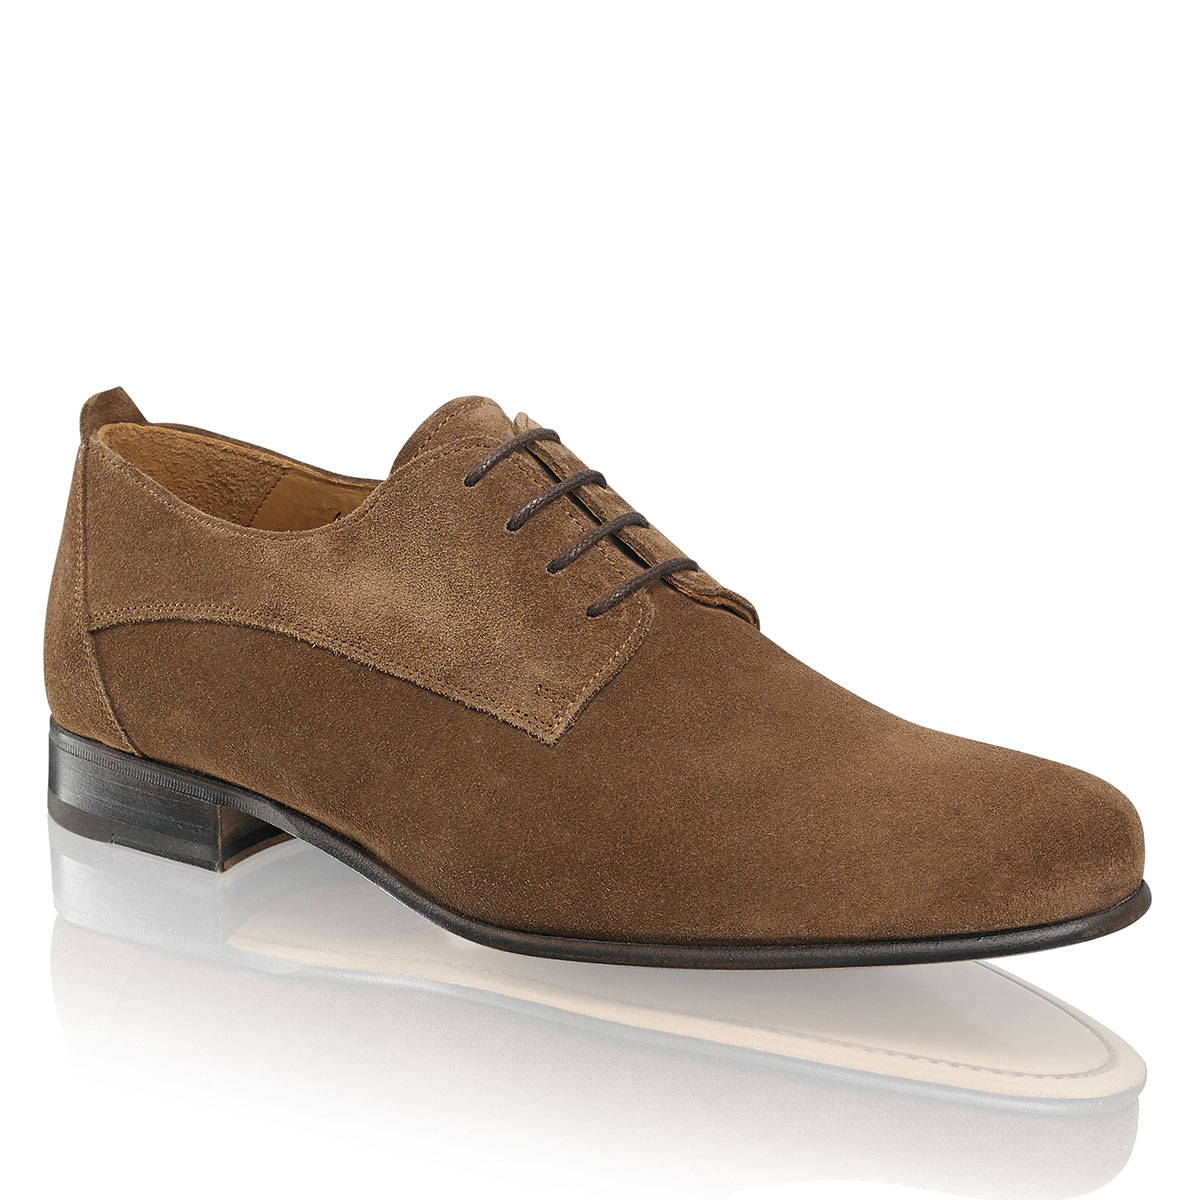 Russell and Bromley CAMDEN Derby Lace-Up